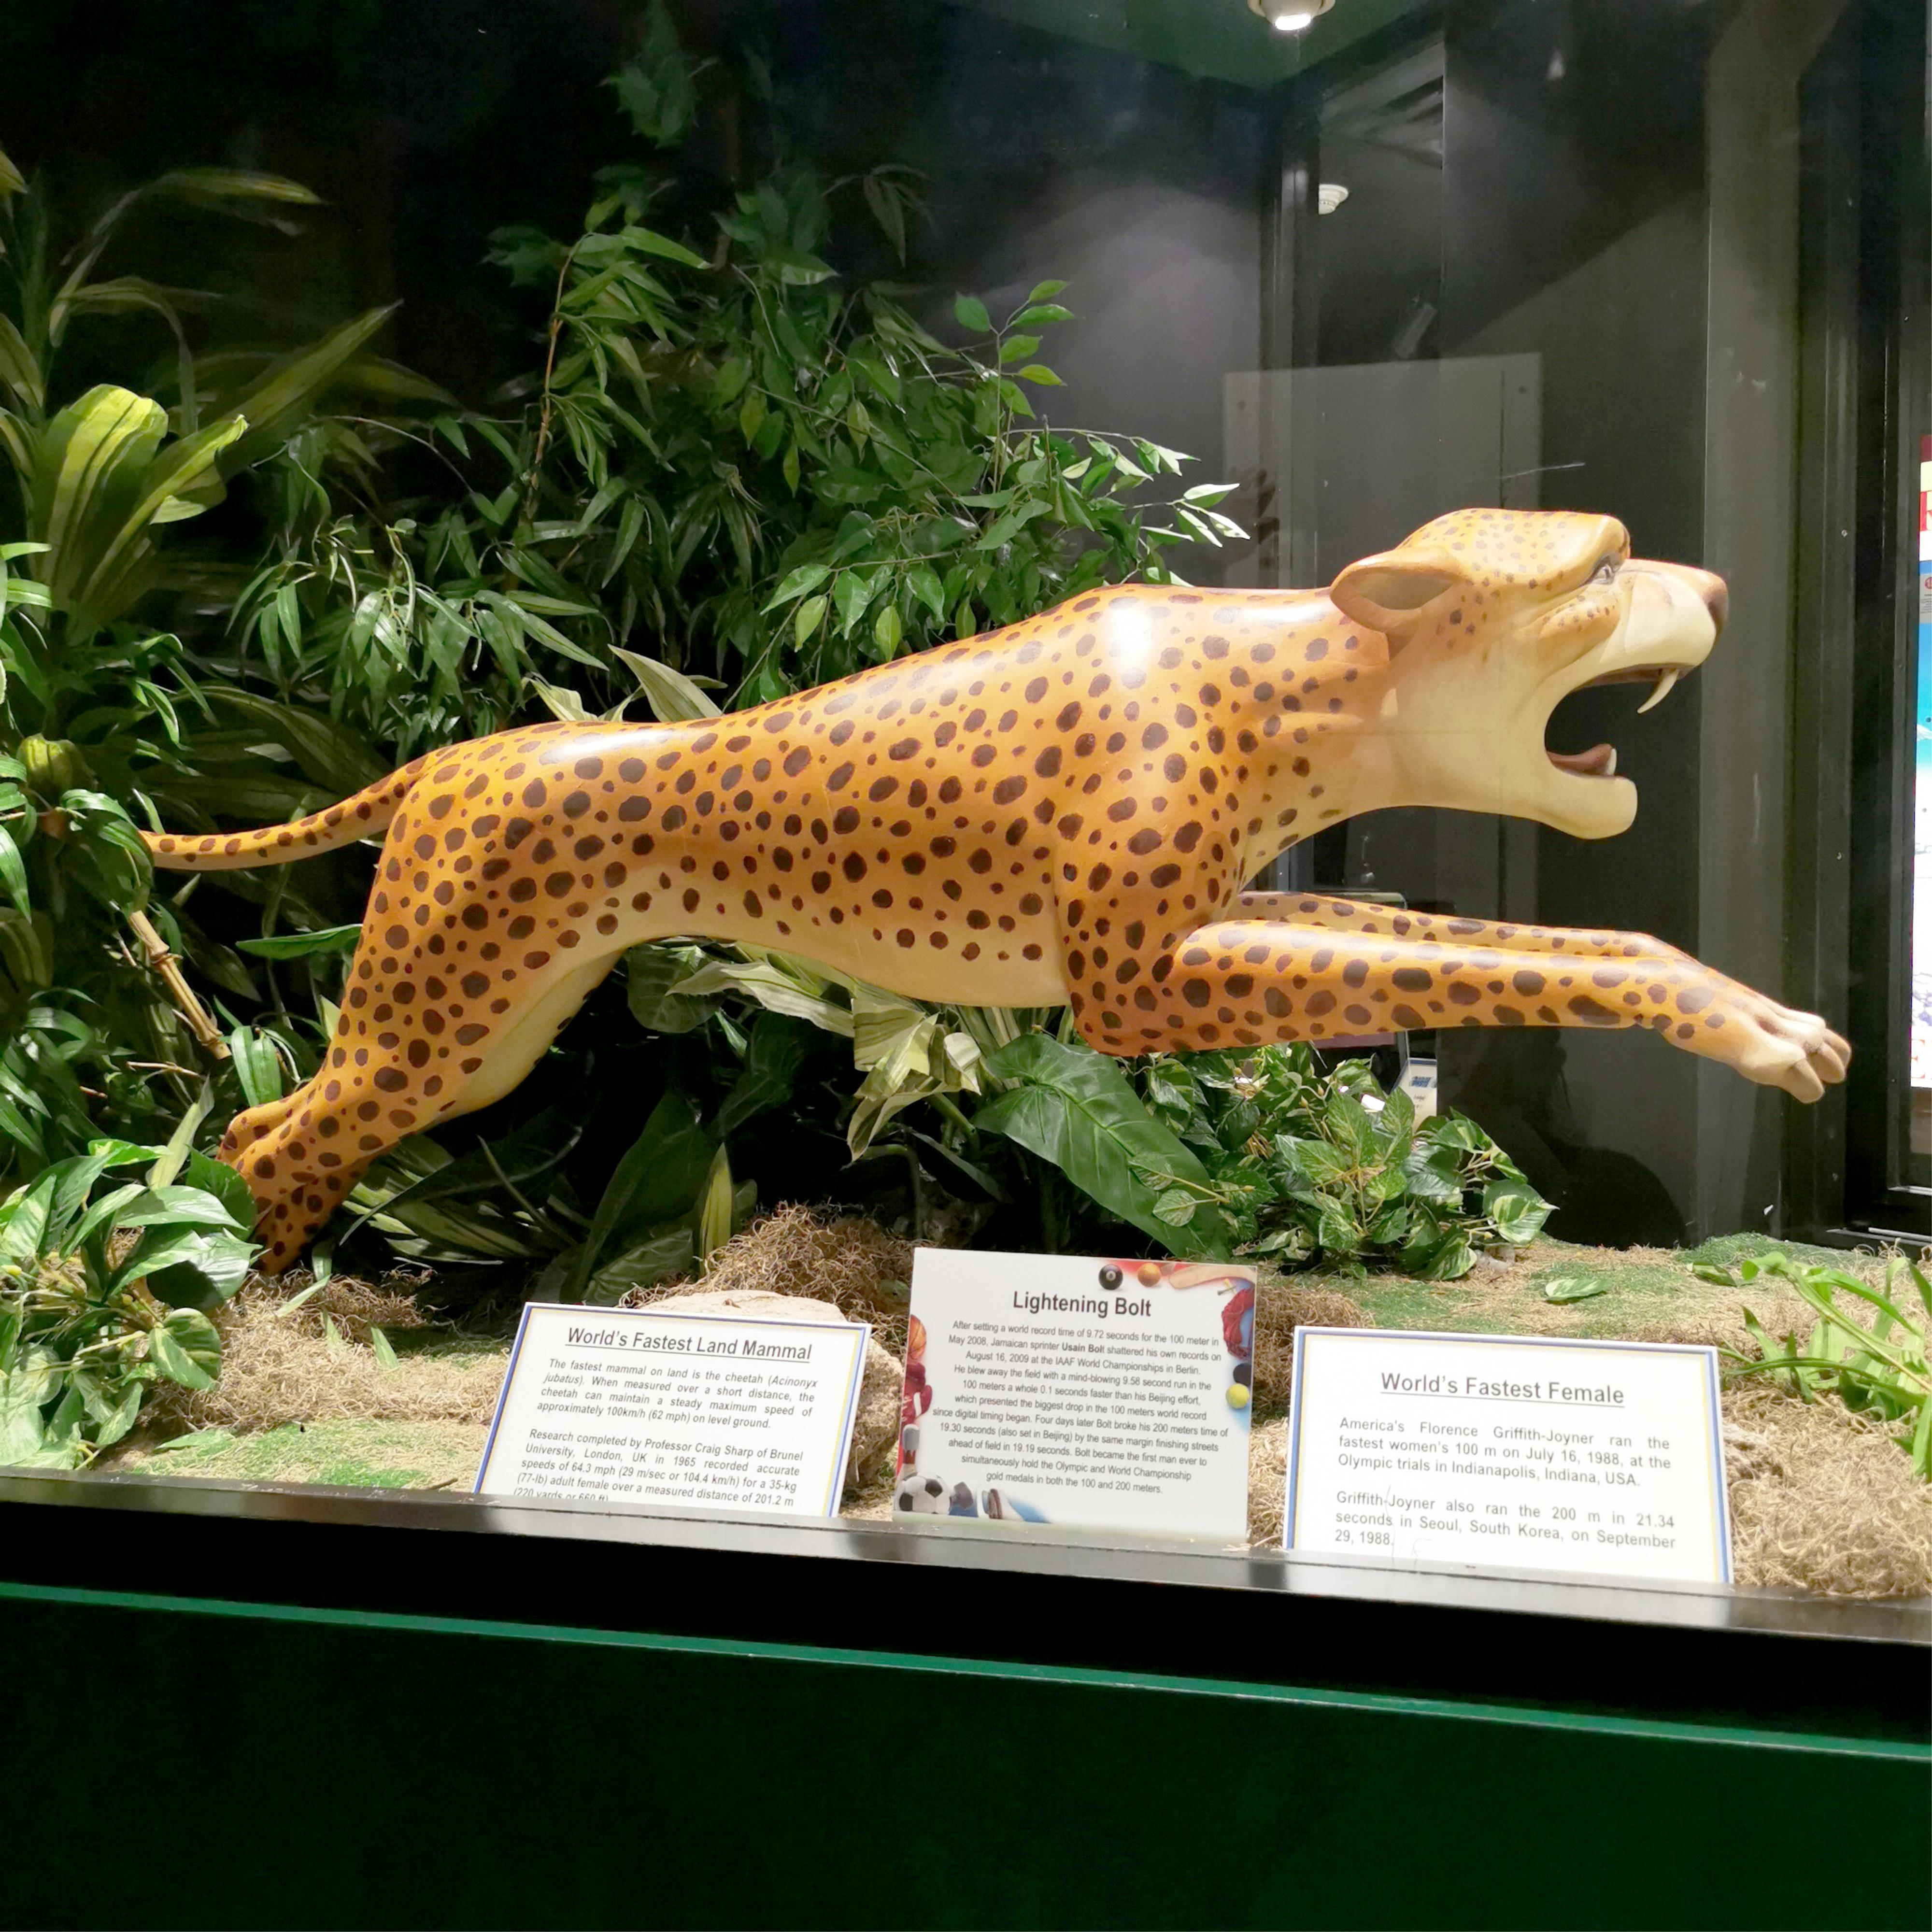 Guinness World Record Fastest Mammal Cheetah Museum Display